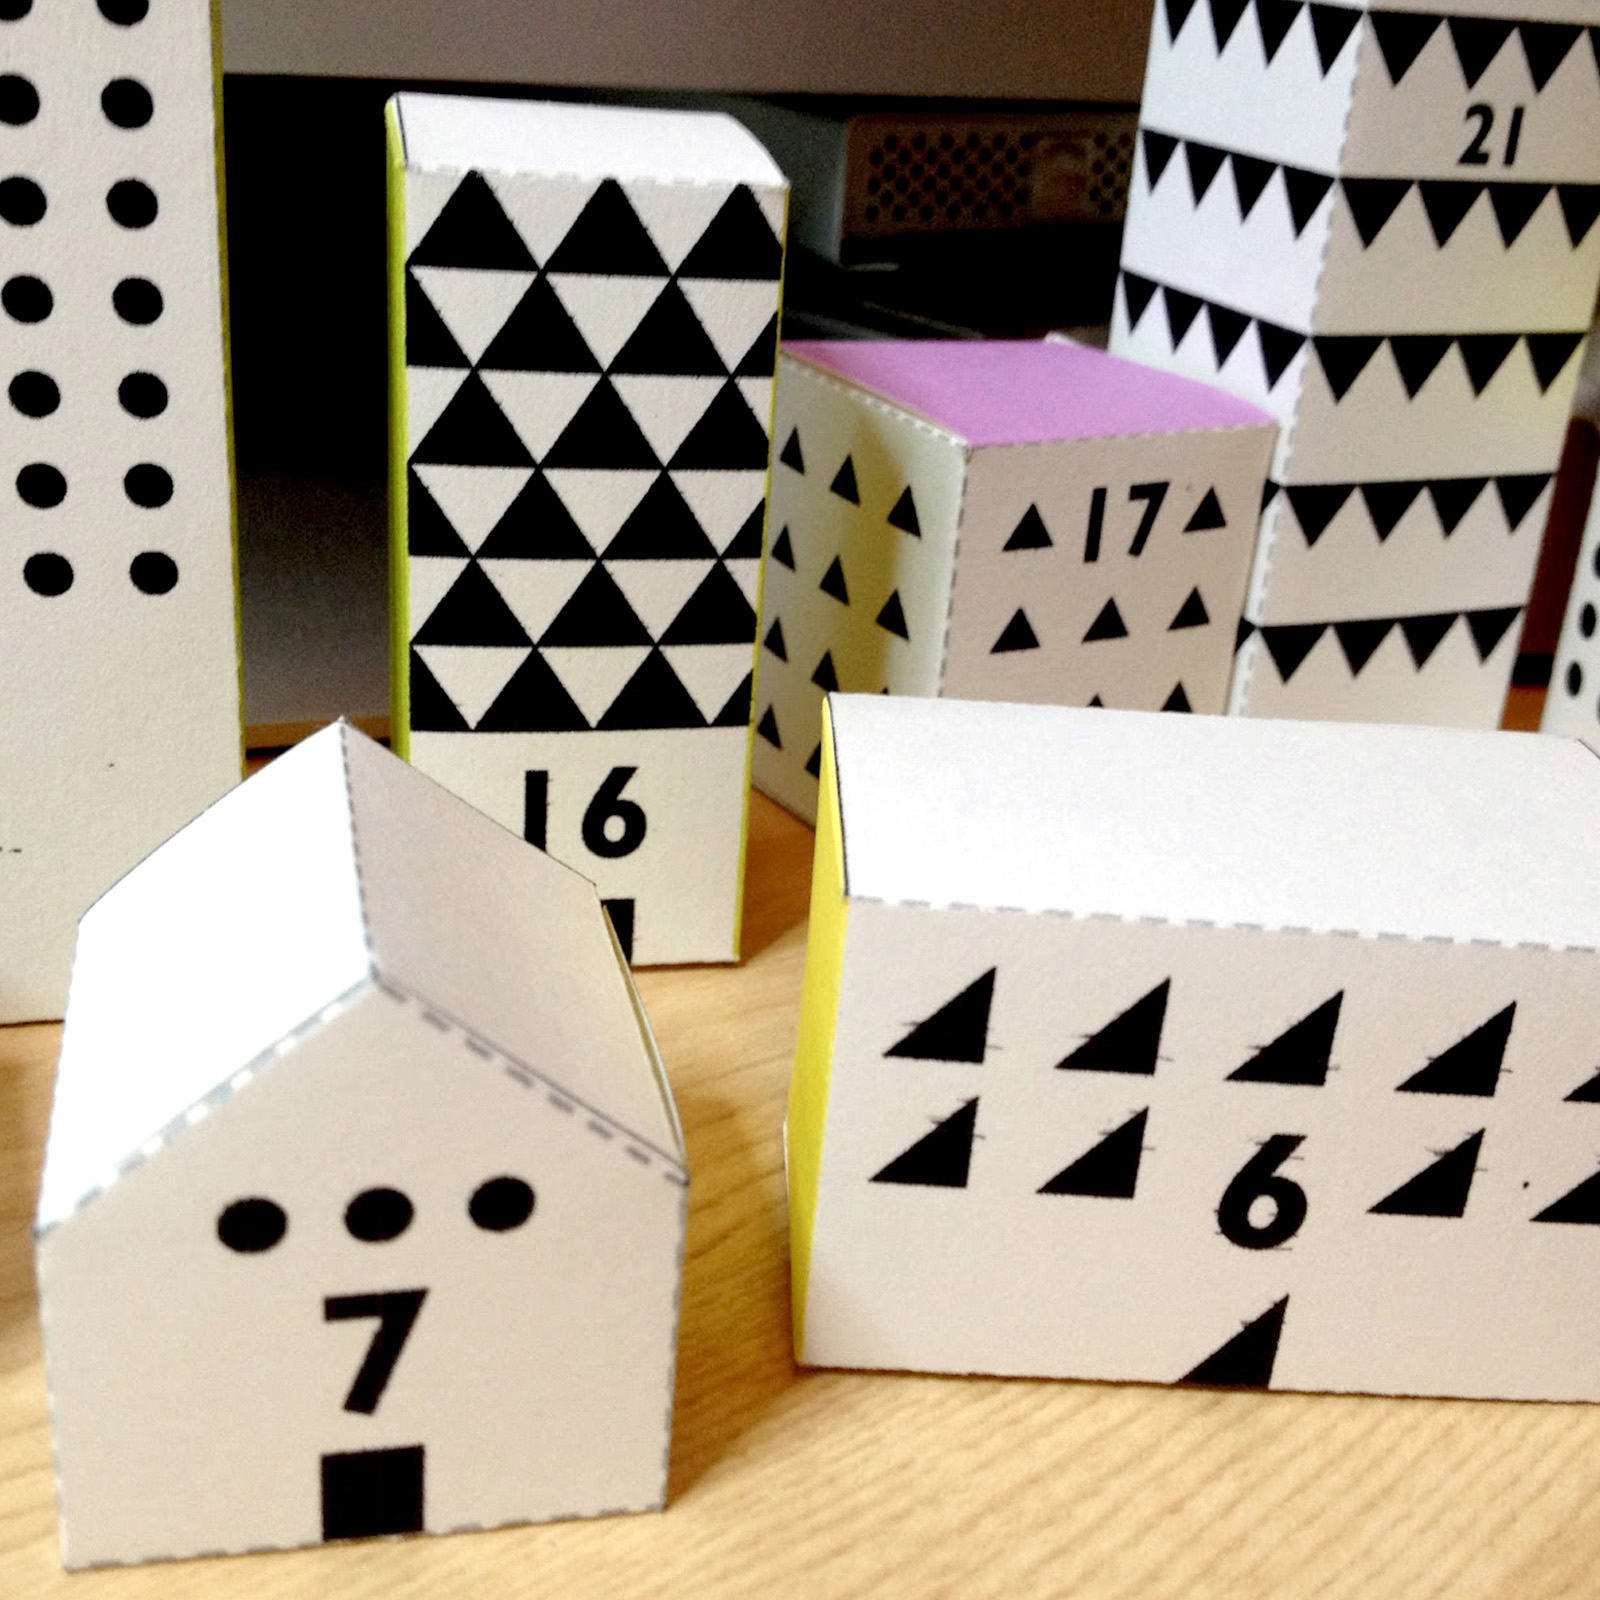 GE_20121115-PAPER-DIY-CRAFT-Here-Comes-Sant-Claus-Advent-Calendar_cover